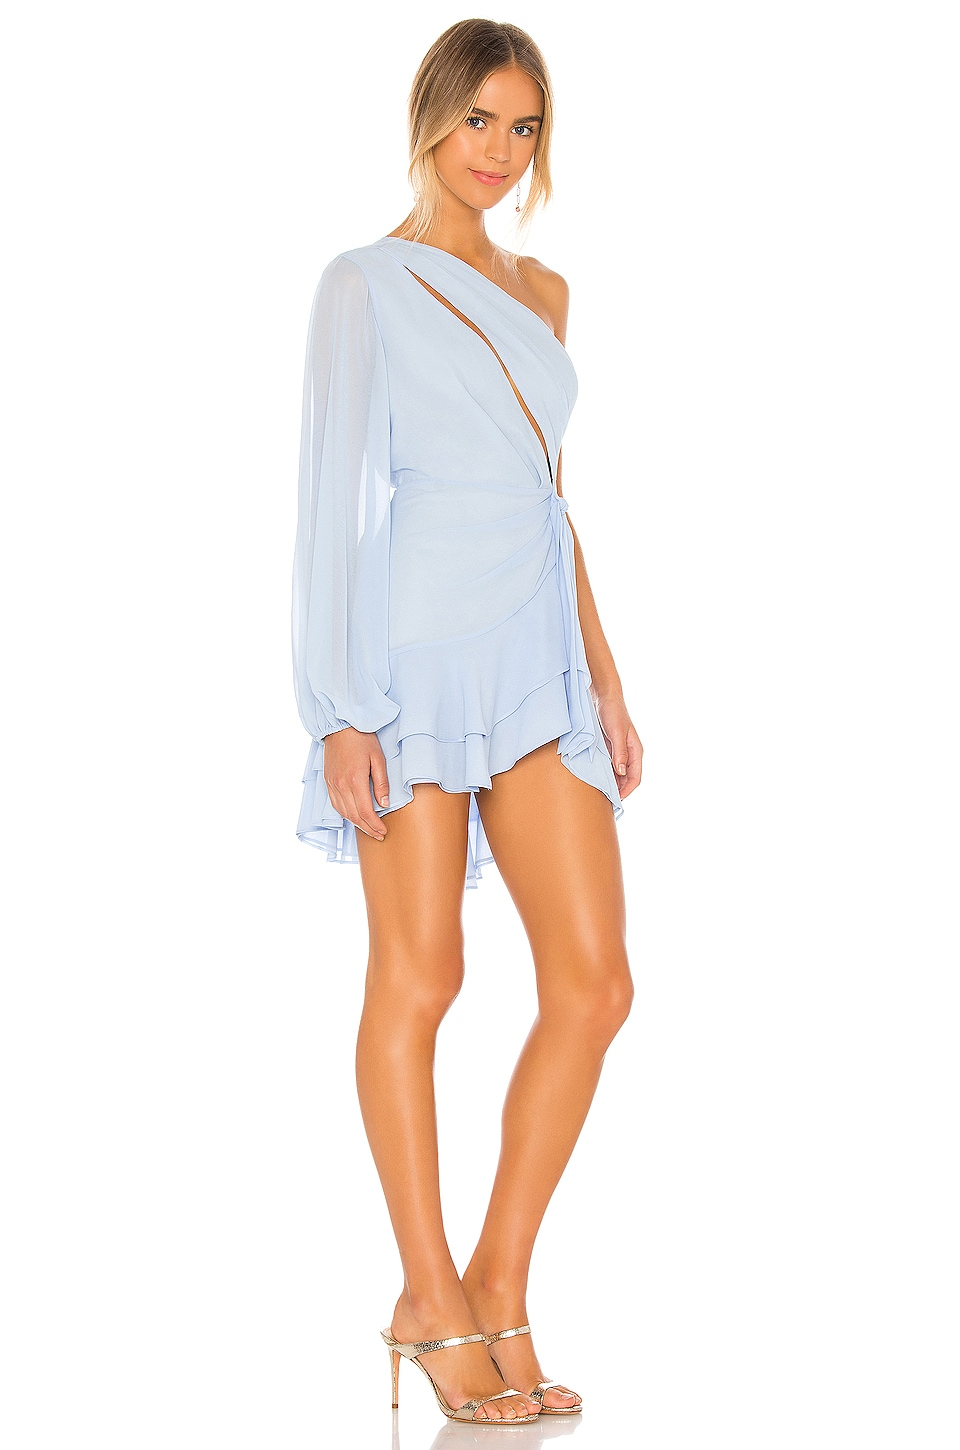 x REVOLVE Sunny Mini Dress, view 2, click to view large image.